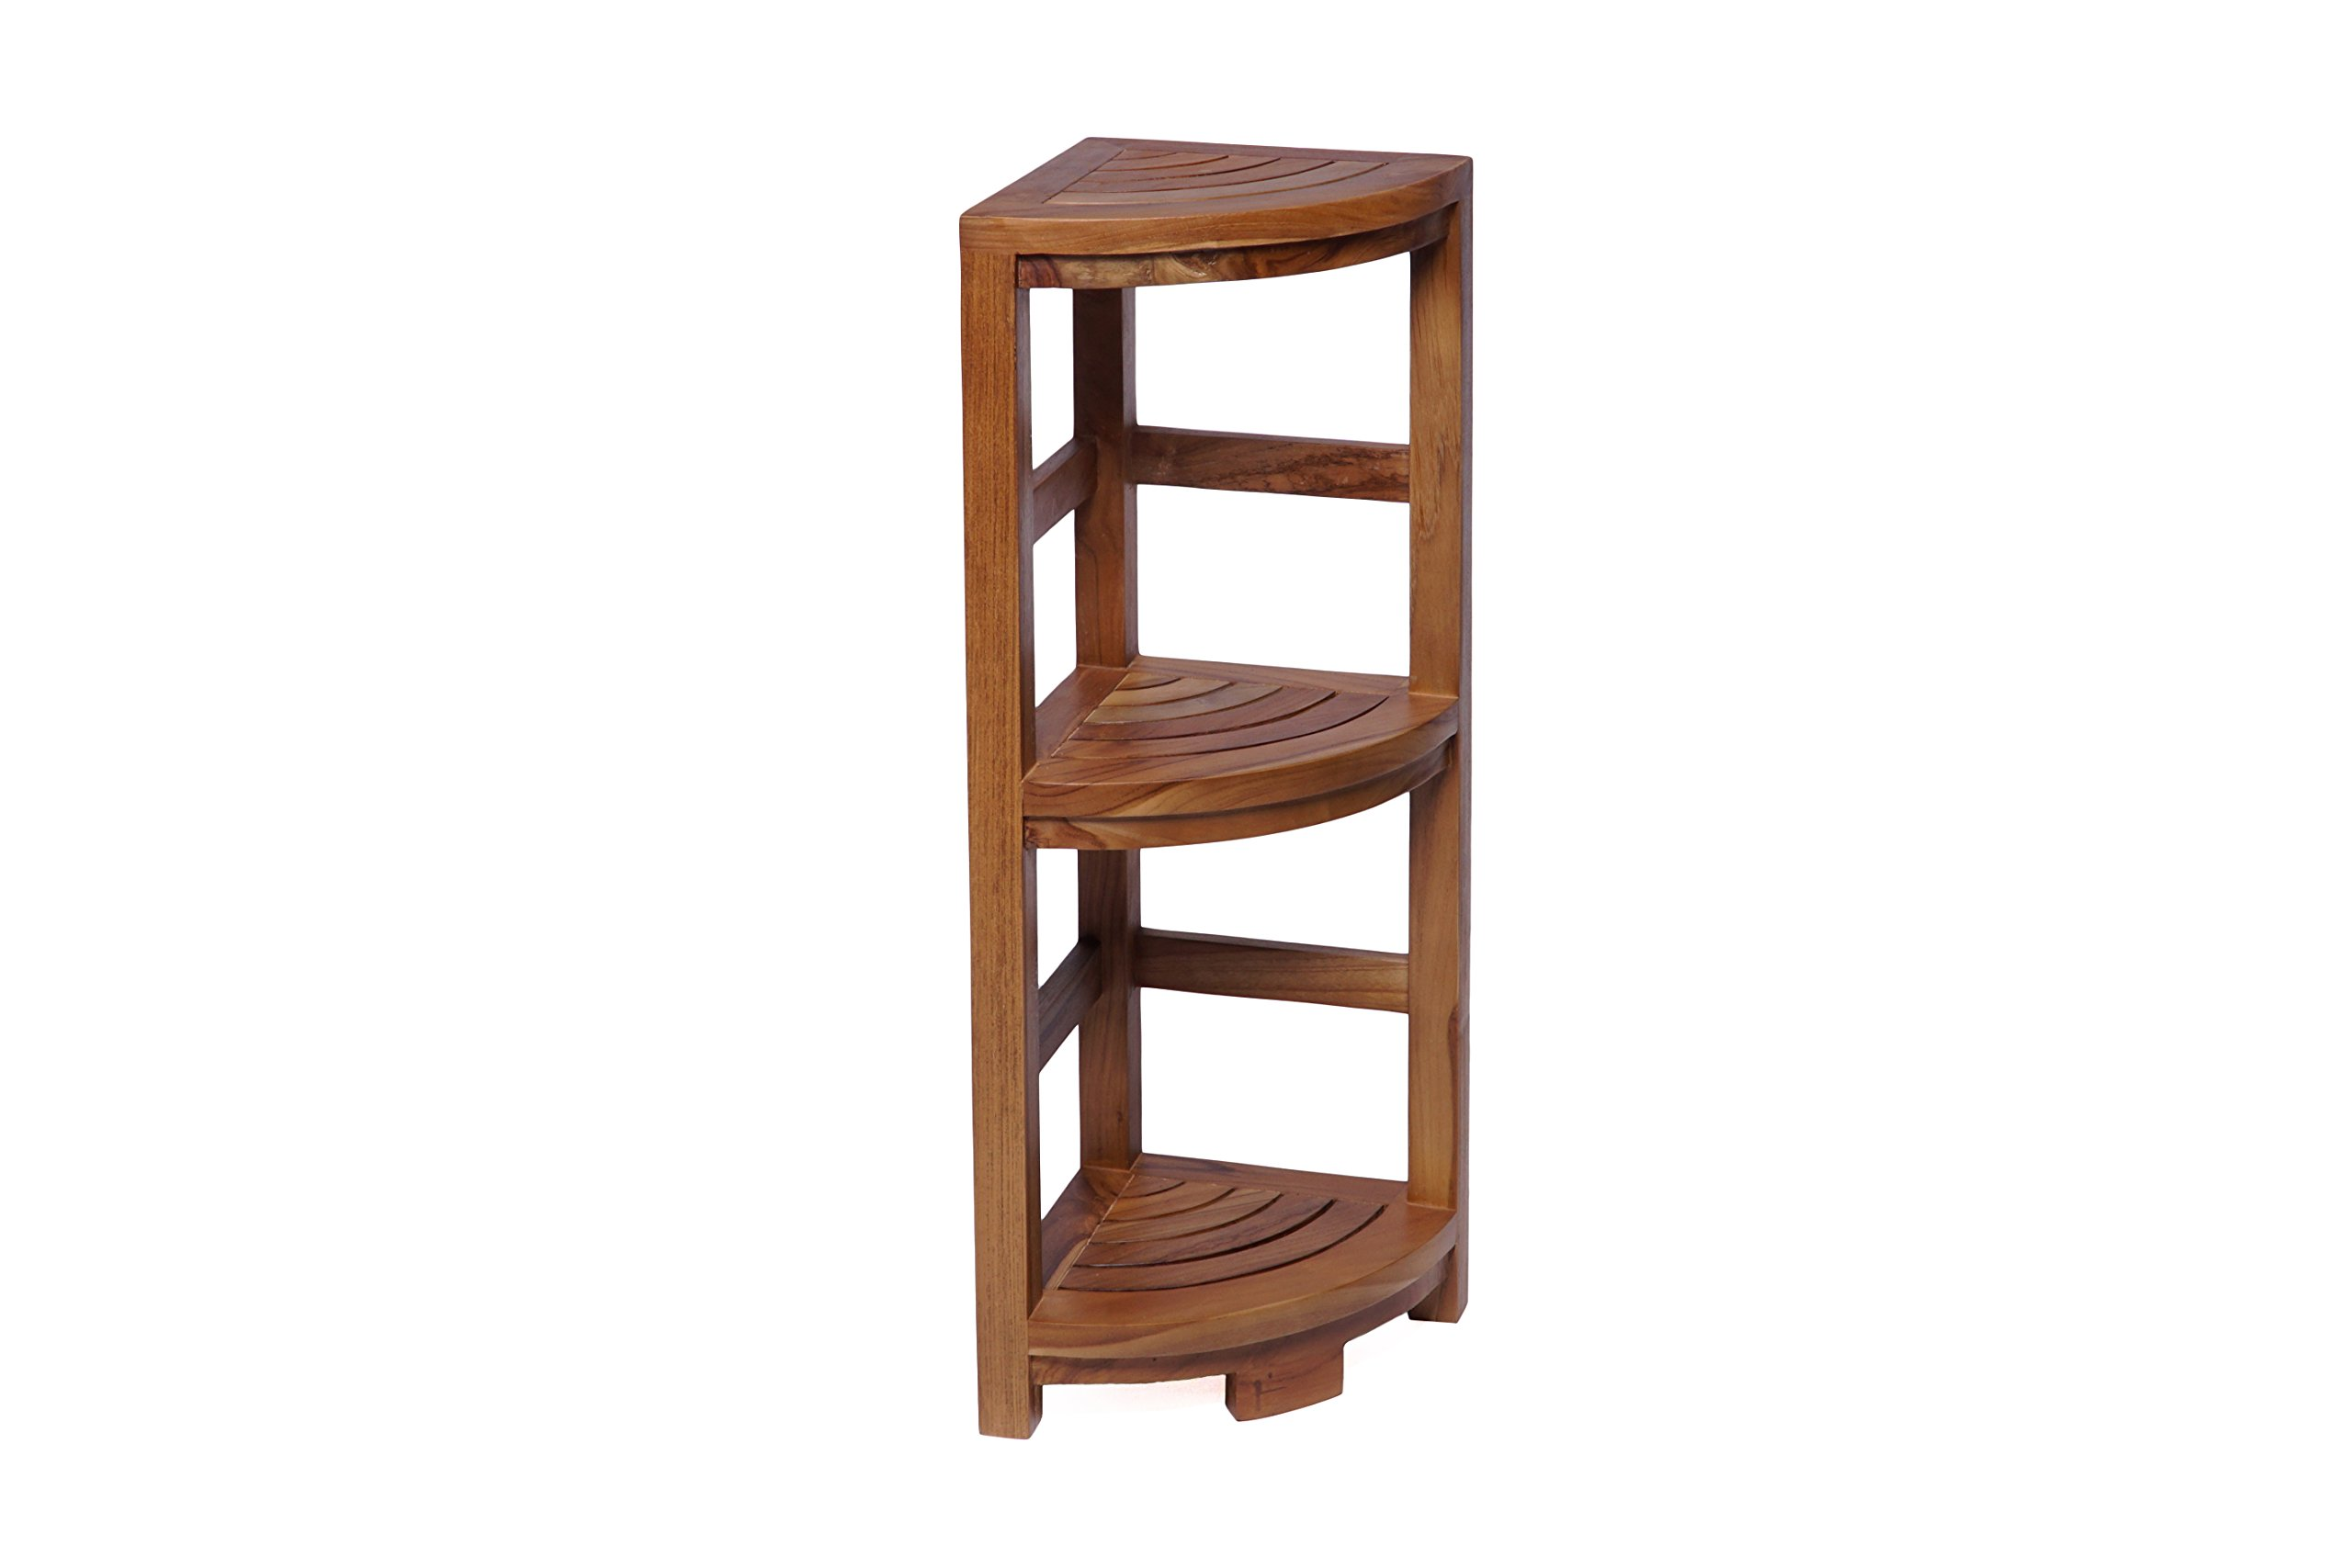 Teak Boutique Corner Shelf 3-Tier Rounded Wood Madeline by (Natural)